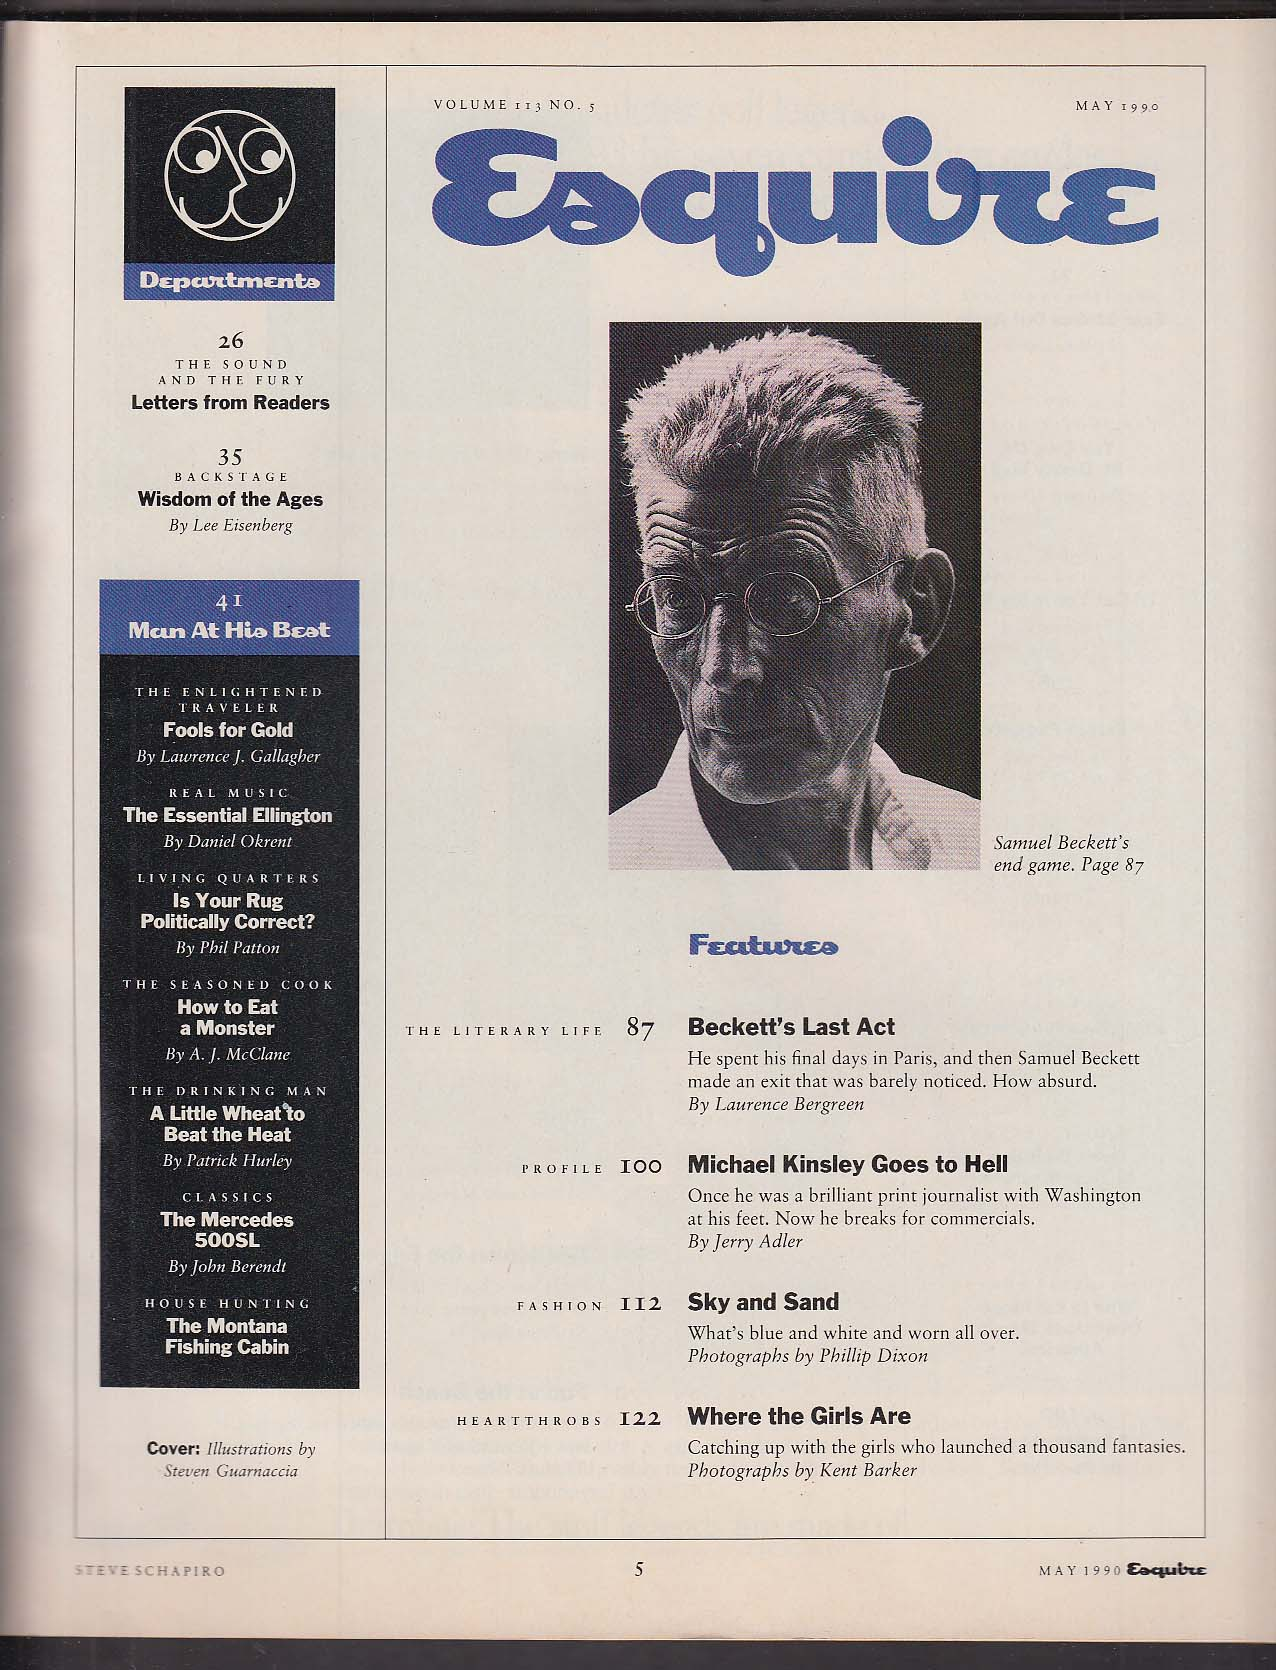 ESQUIRE Warren Beatty Samuel Beckett Michael Kinsley Mark Spitz ++ 5 1990